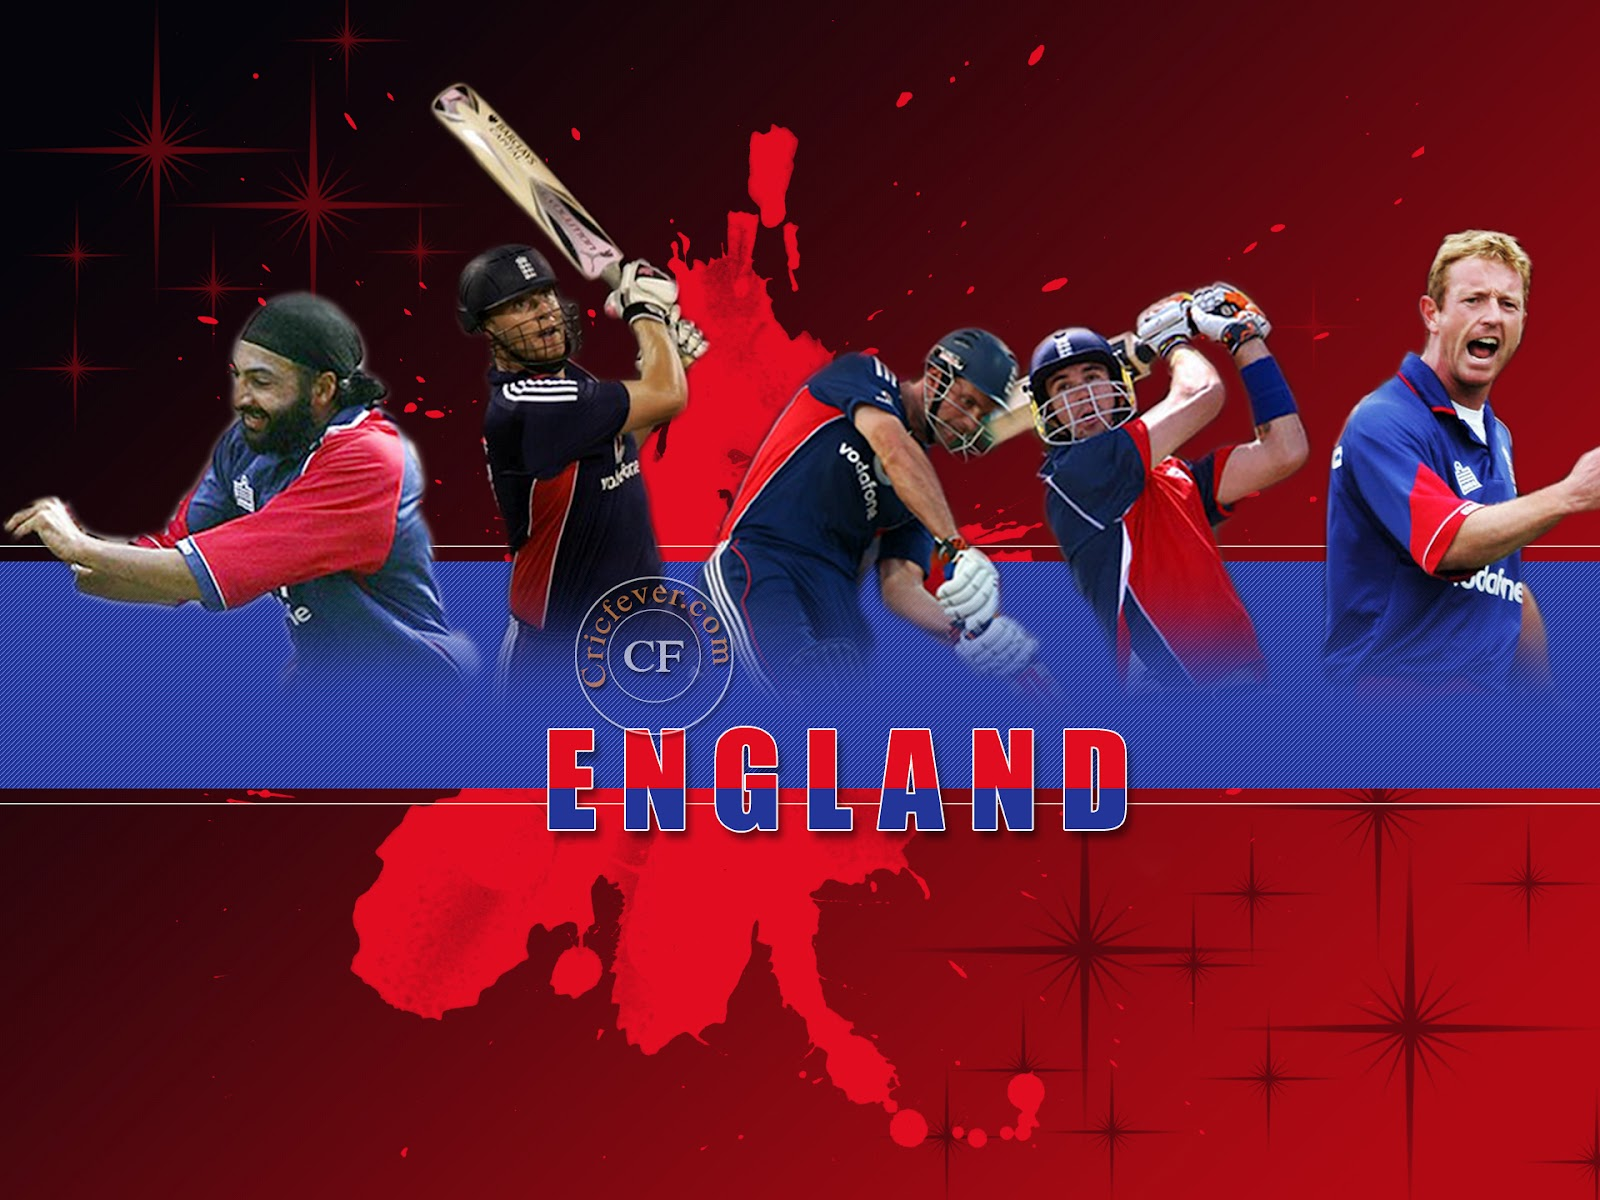 celebrities fashion england cricket team wallpapers